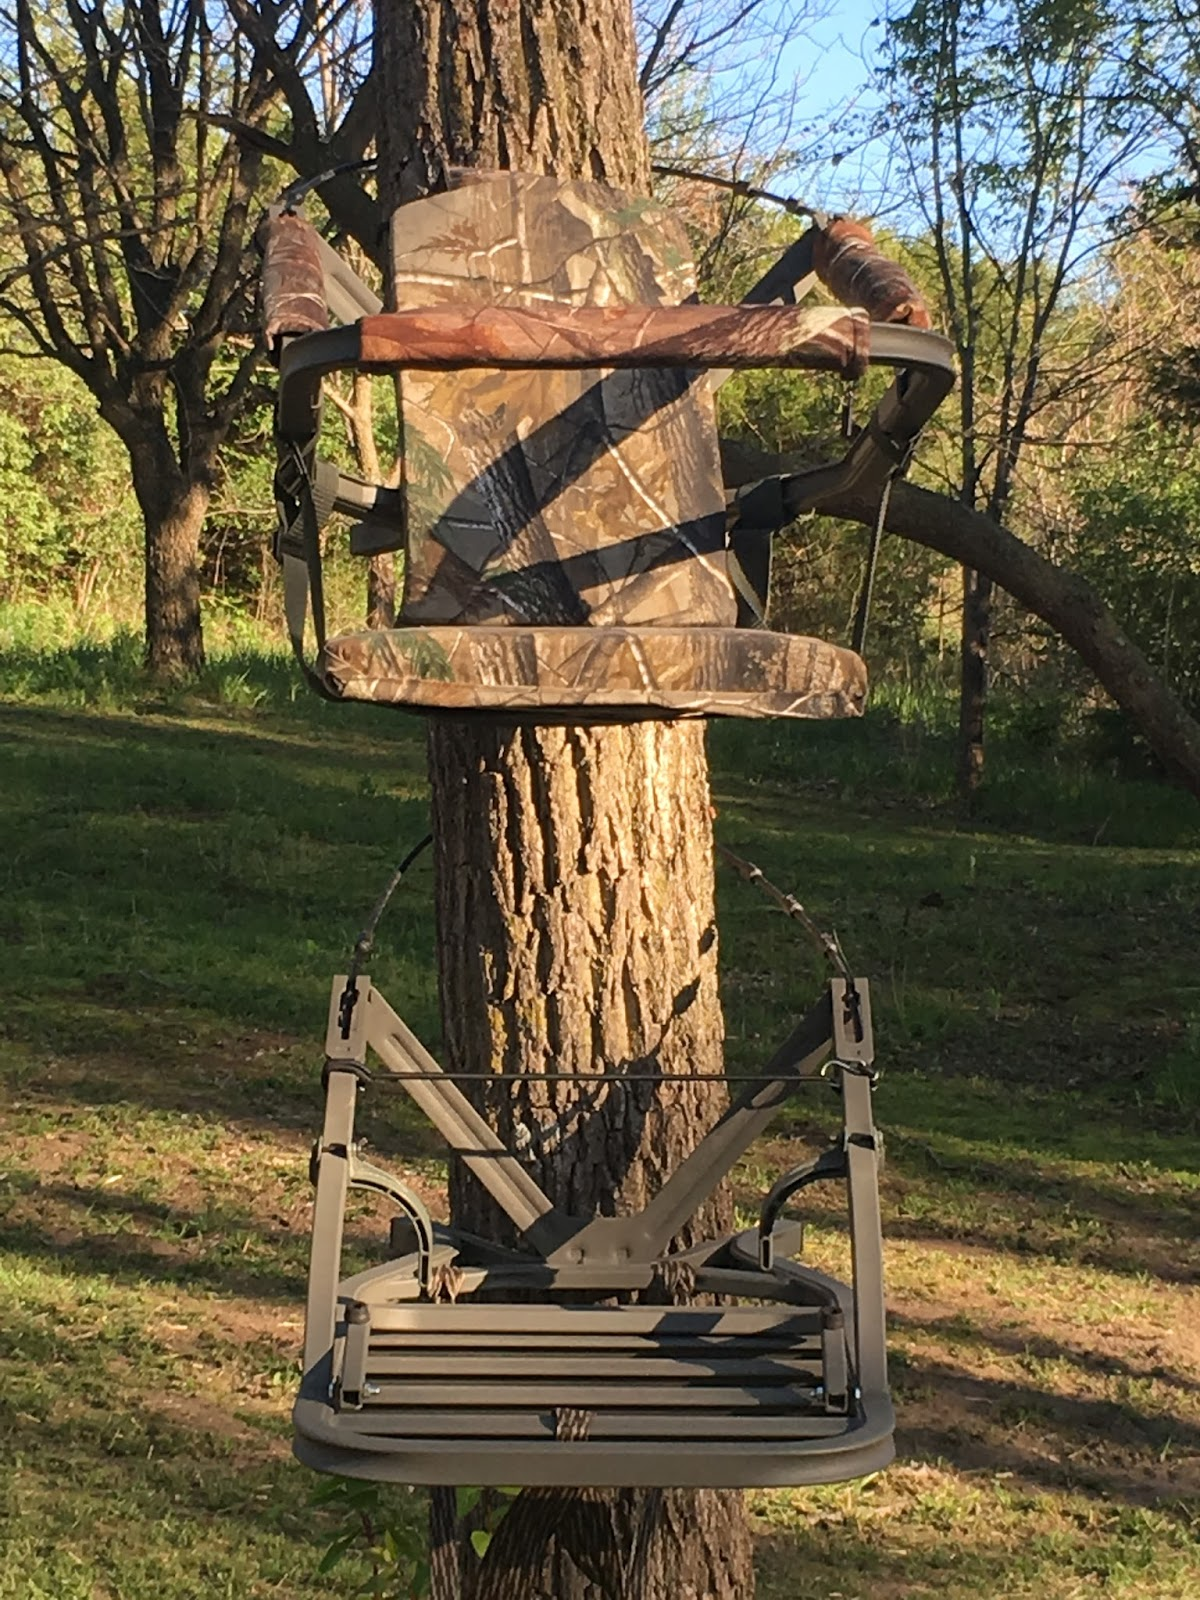 Average Midwest Outdoorsman Summit Viper Climbing Tree